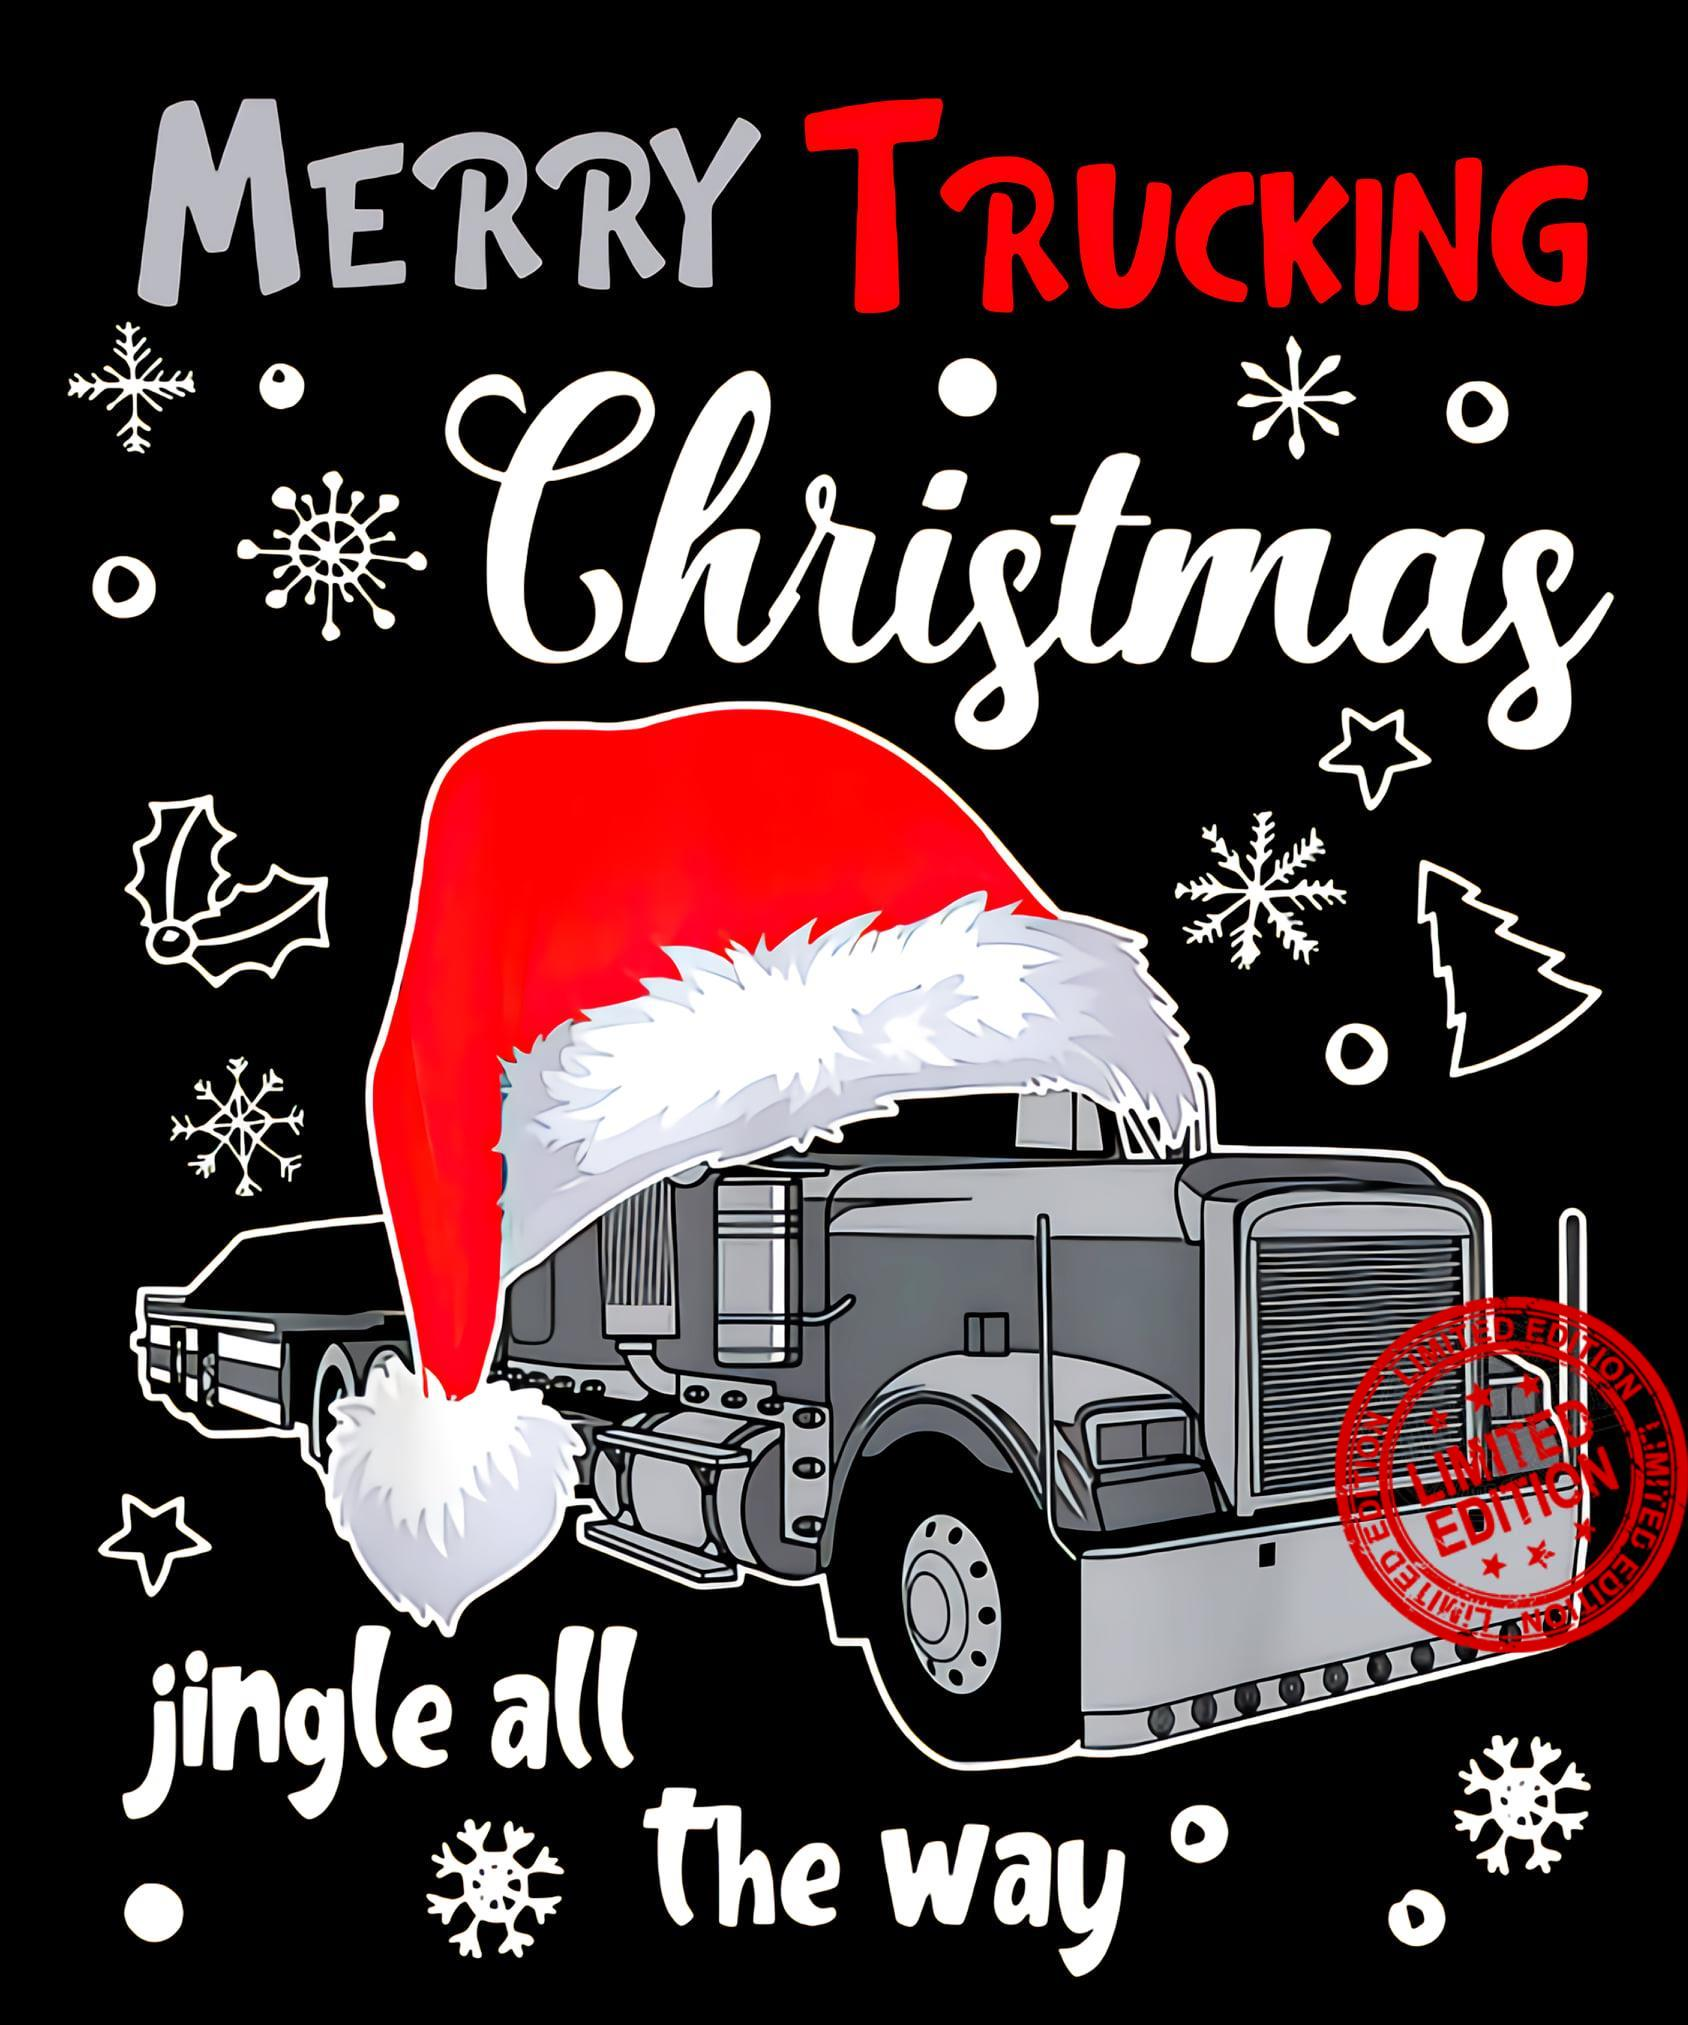 Merry Trucking Christmas Jingle All The Way Shirt